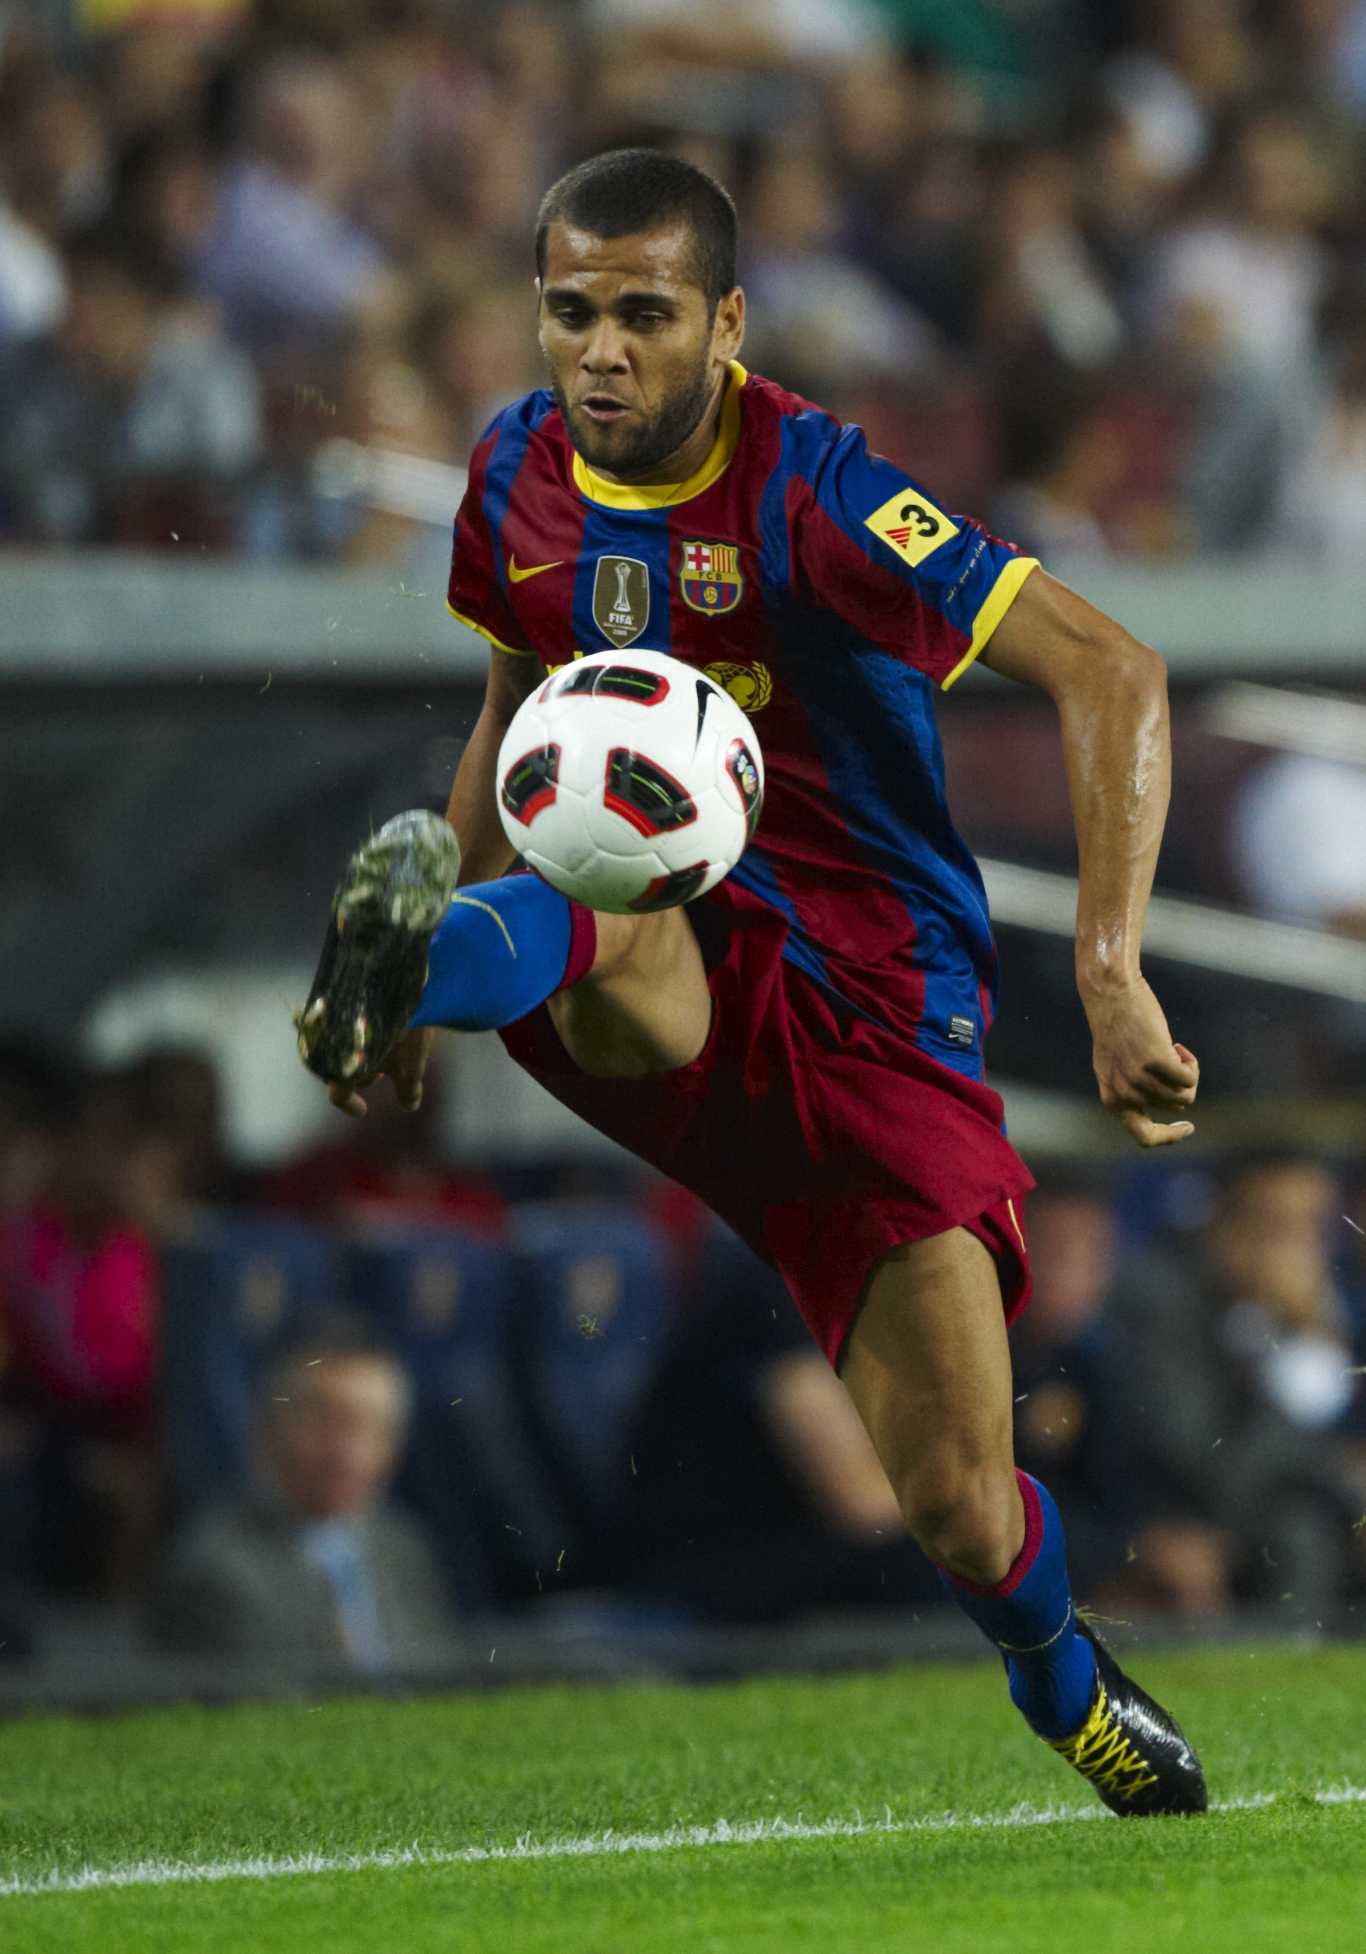 BARCELONA, SPAIN - SEPTEMBER 22:  Daniel Alves of Barcelona controls the ball during the La Liga match between Barcelona and Sporting de Gijon at Nou Camp on September 22, 2010 in Barcelona, Spain. Barcelona won 1.0.  (Photo by Manuel Queimadelos Alonso/G